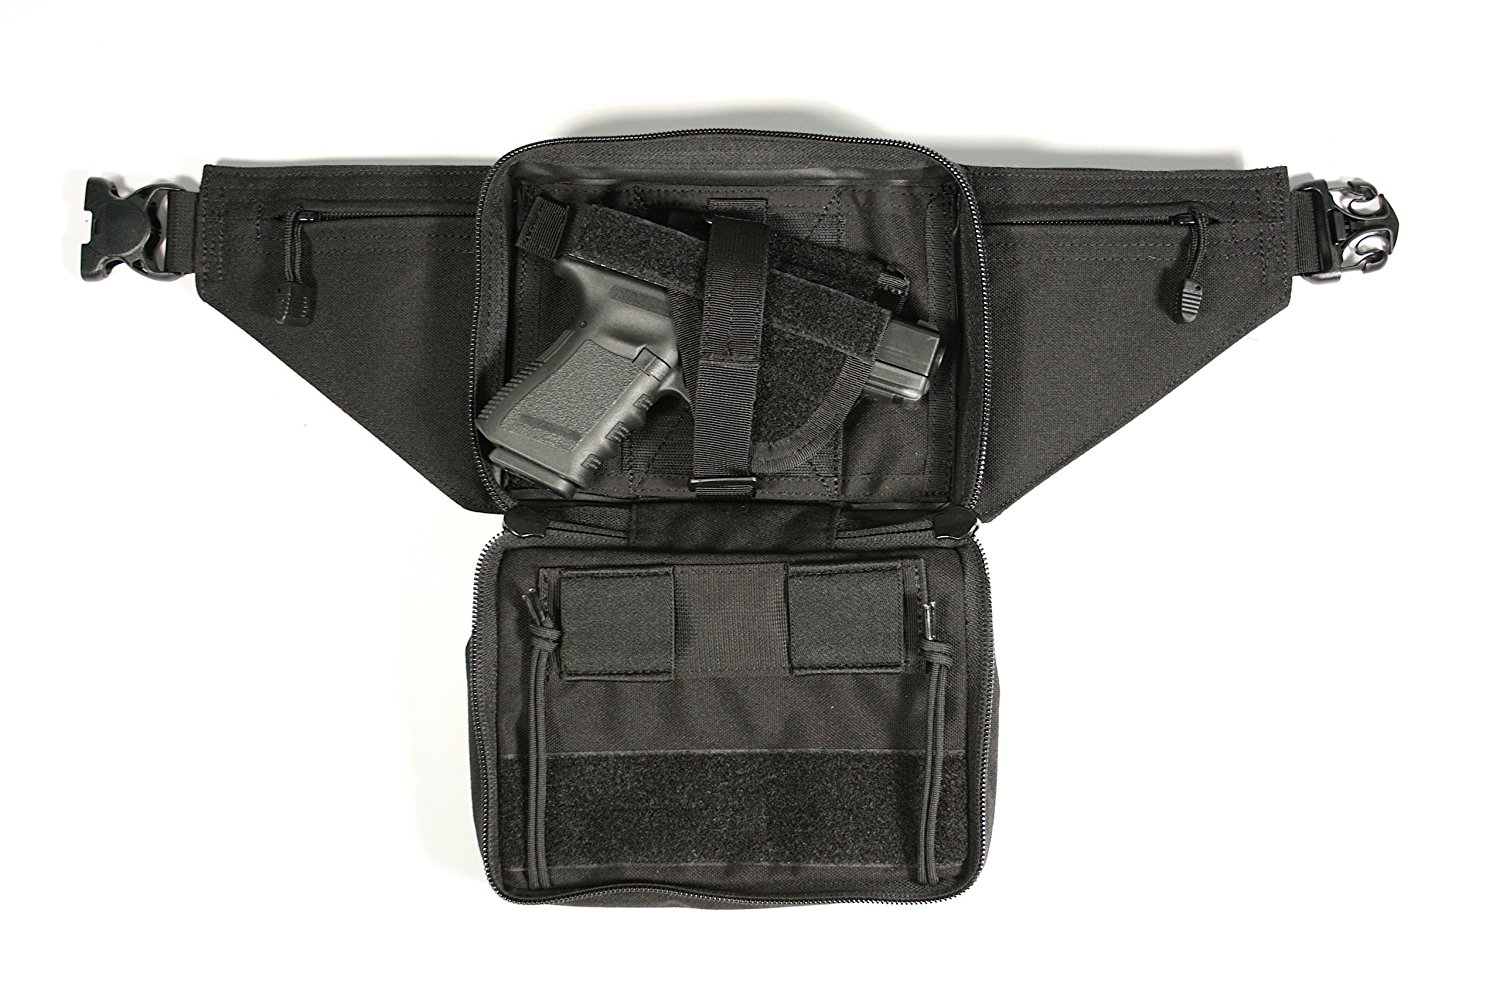 Nylon belt pouch holster